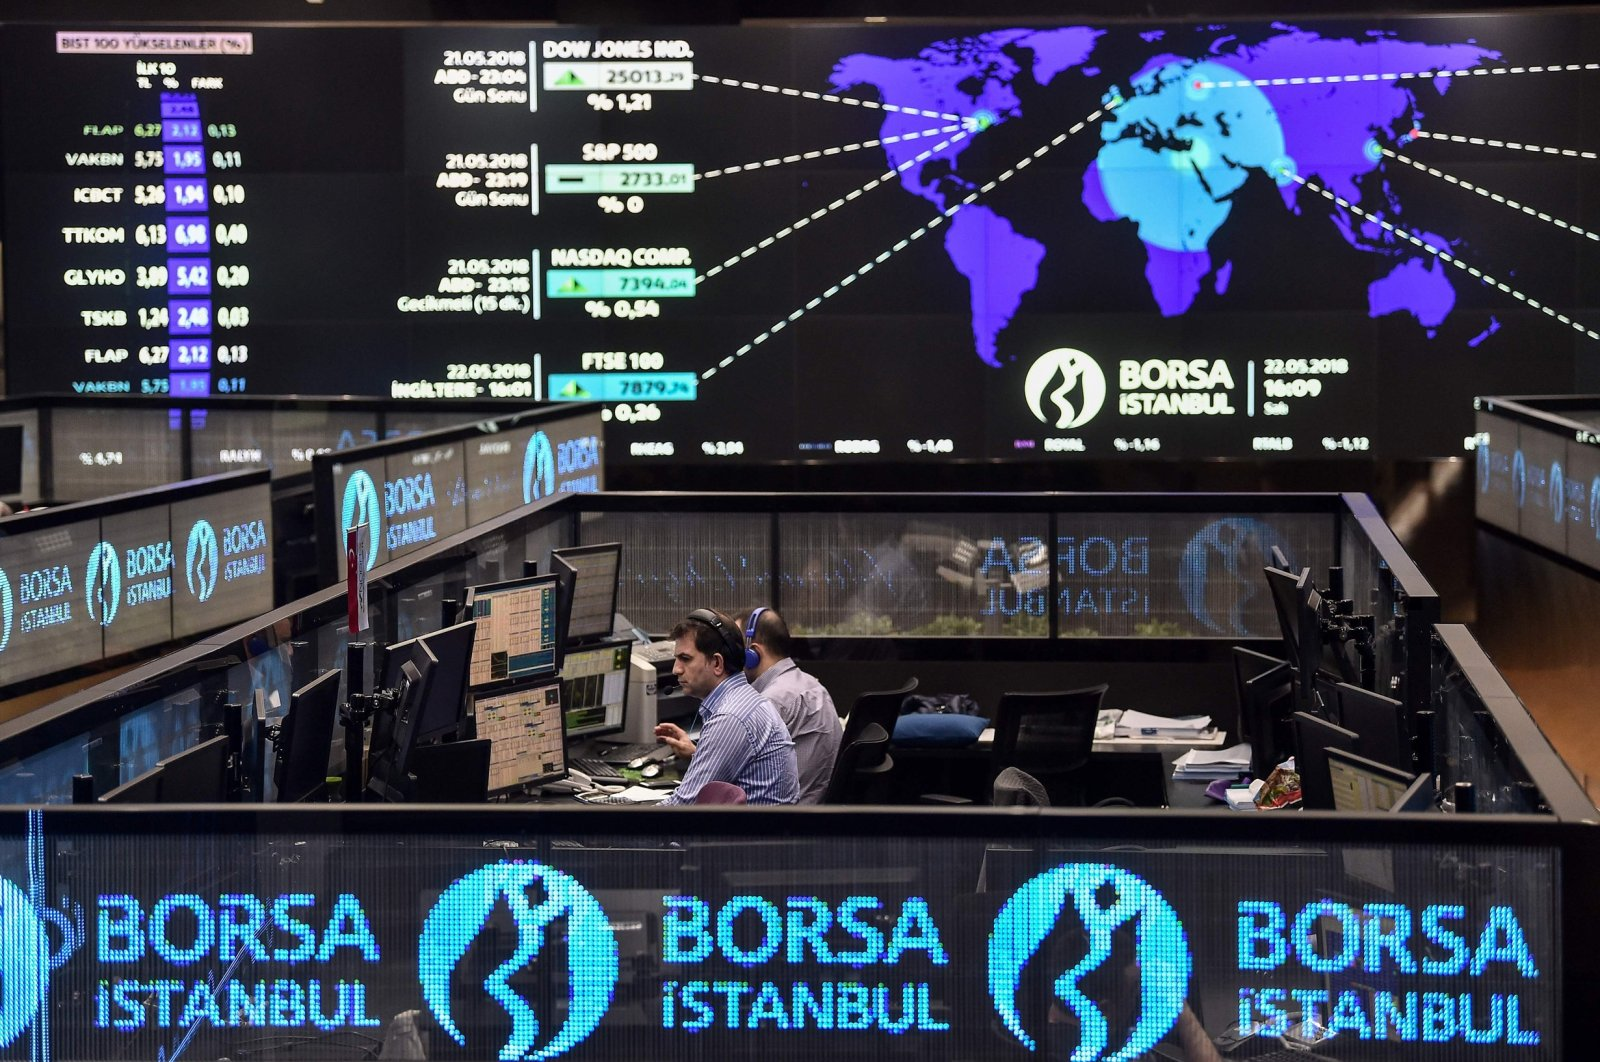 Traders work at their desks on the floor of the Borsa Istanbul, Istanbul, Turkey, May 22, 2018. (AFP Photo)